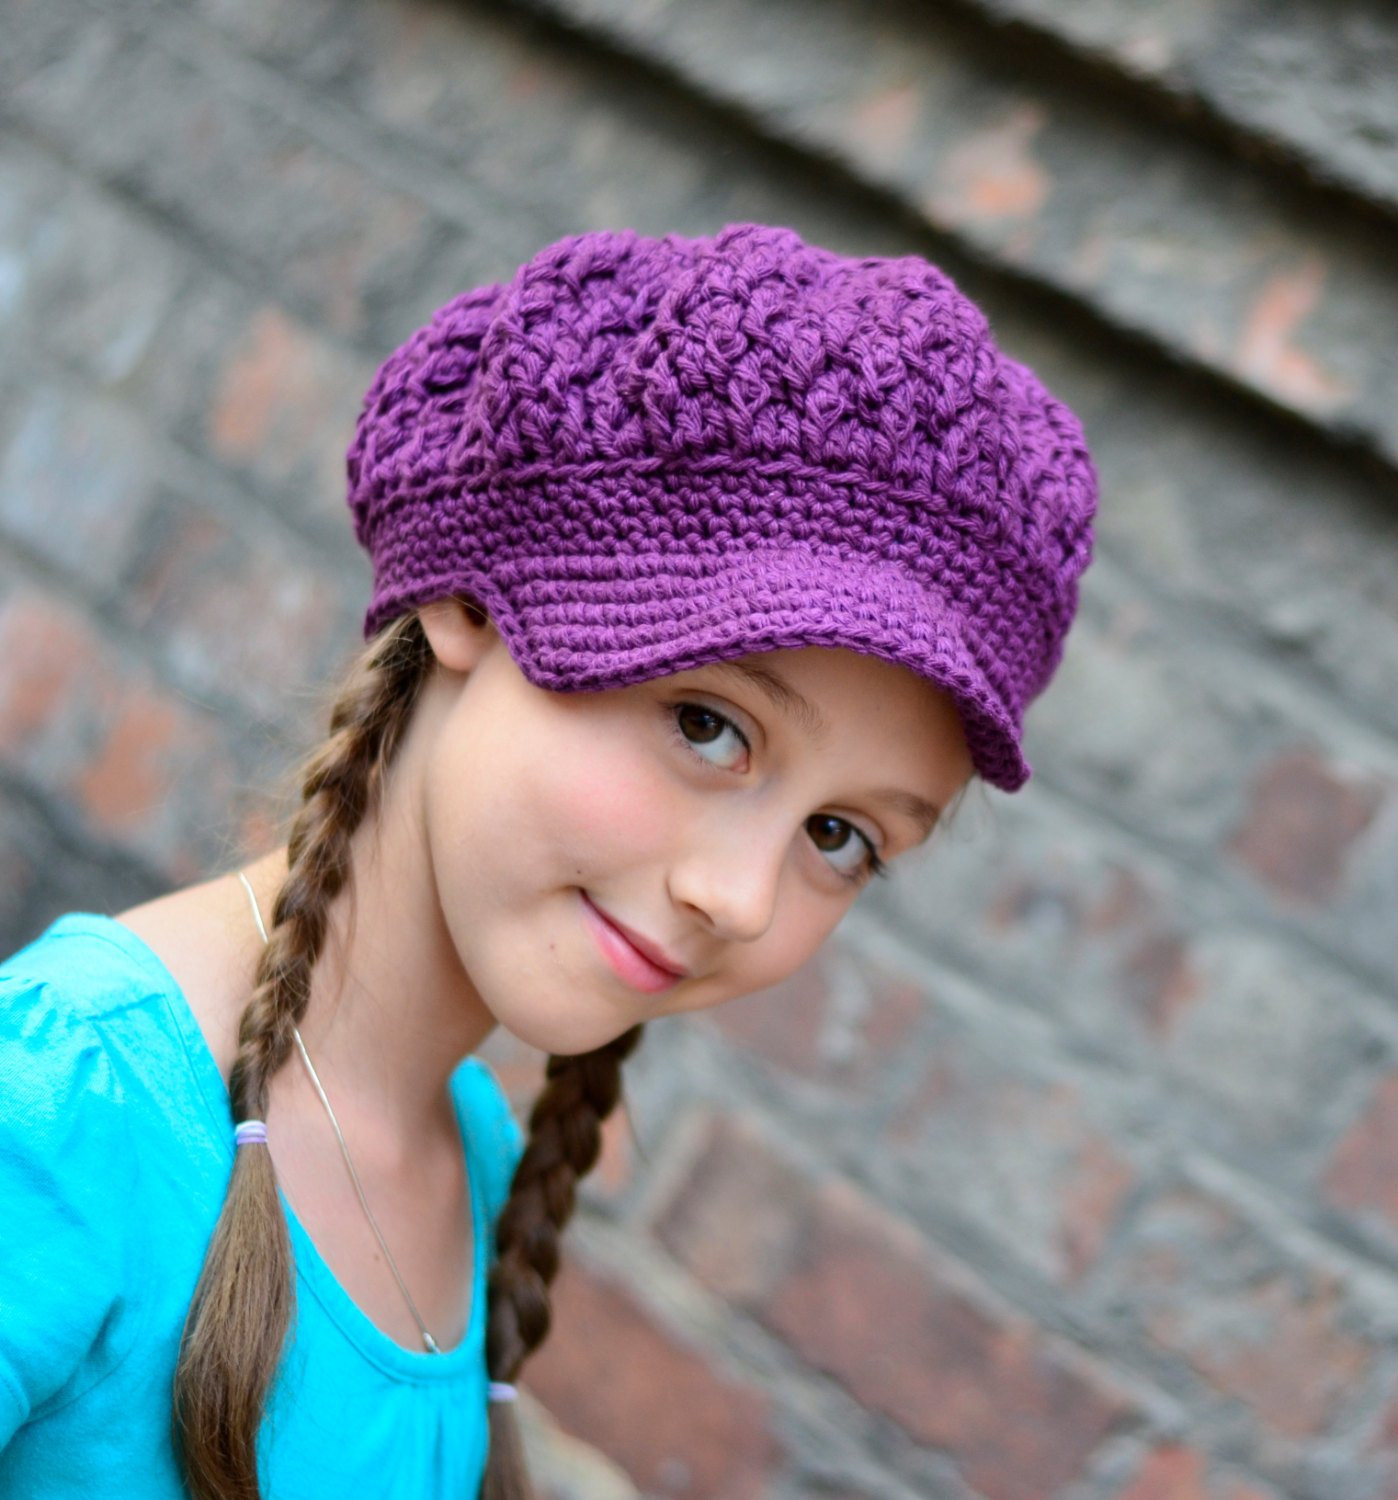 Crochet Girl Hat Elegant Girls Crochet Hat Crochet Newsboy Hat Newsboy Hat for Of Superb 47 Pics Crochet Girl Hat